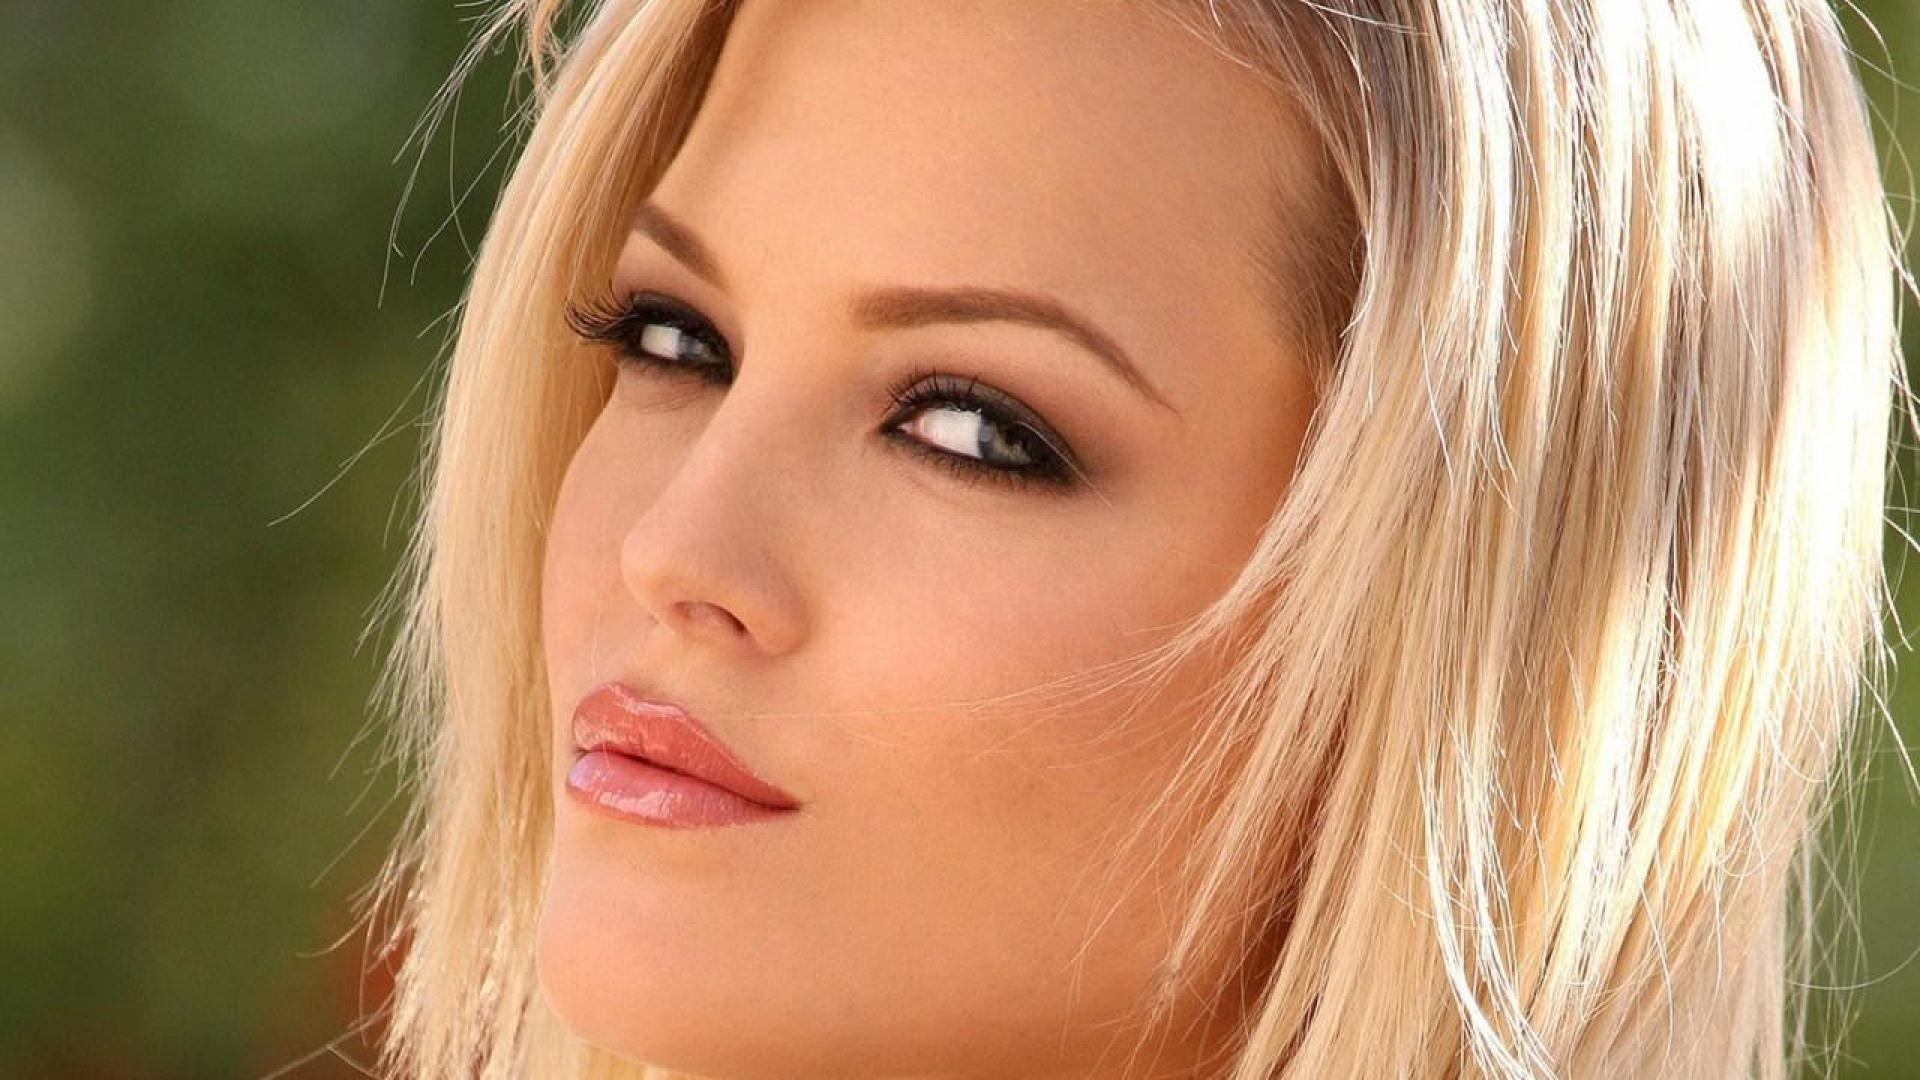 25+] Alexis Texas Wallpapers on WallpaperSafari